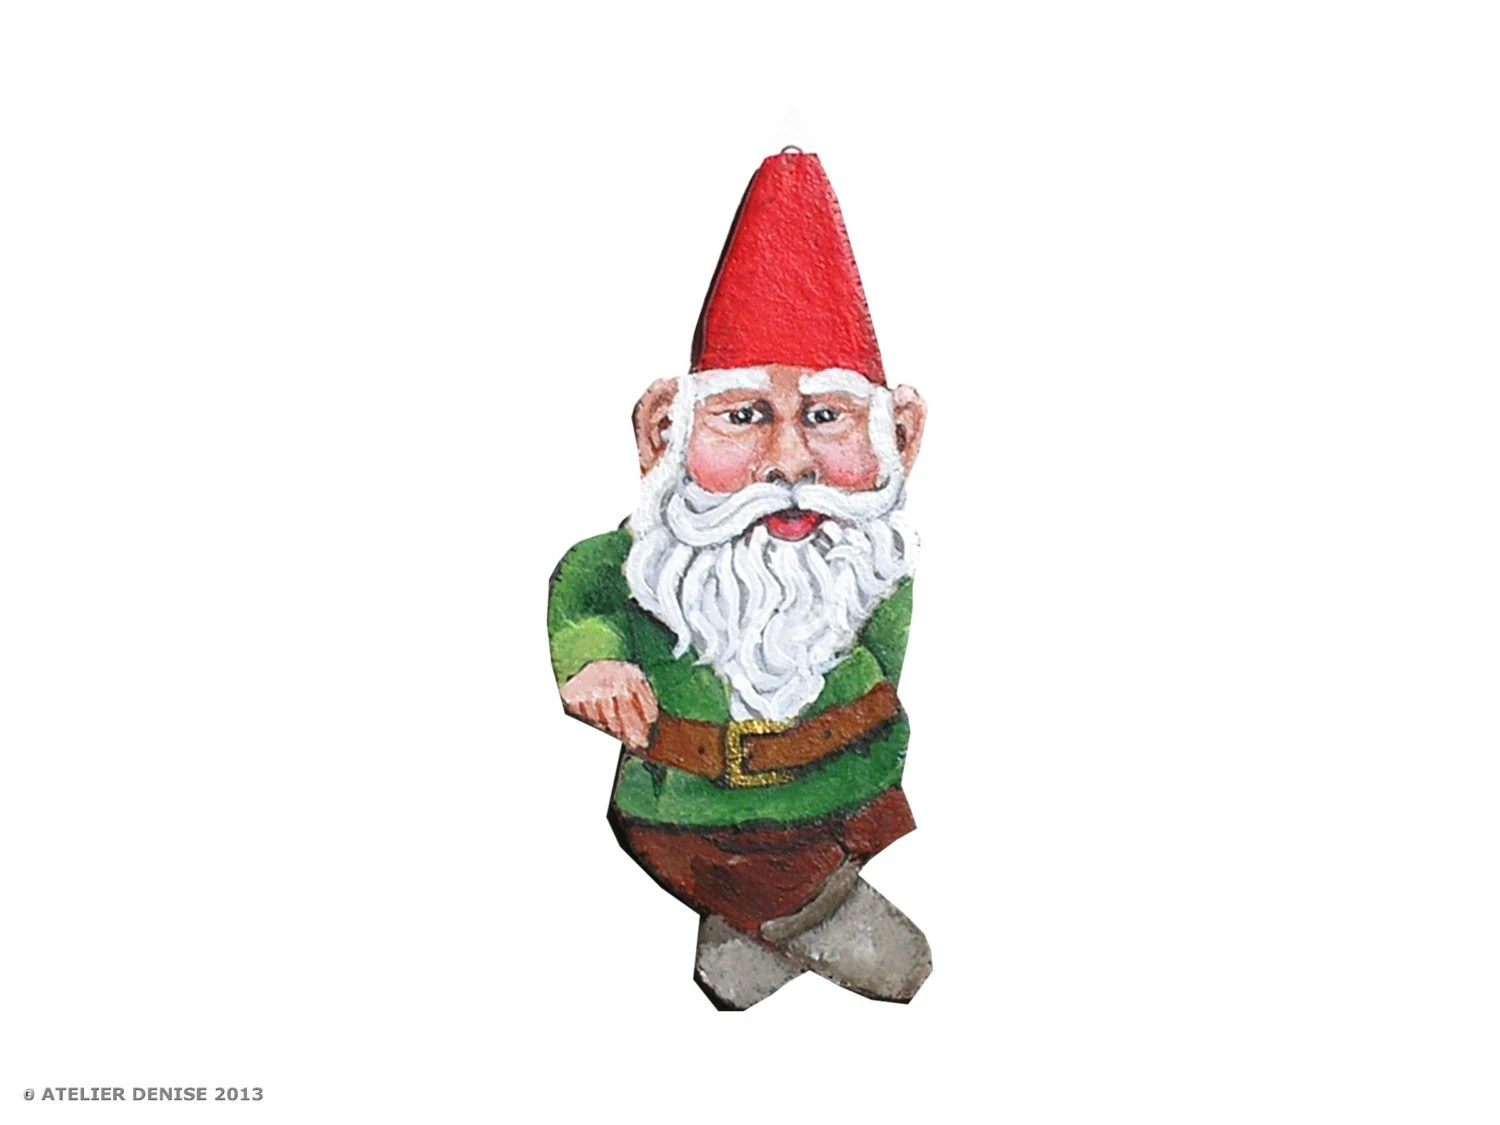 Garden Gnome Christmas Holiday Tree Ornament - AtelierDenise